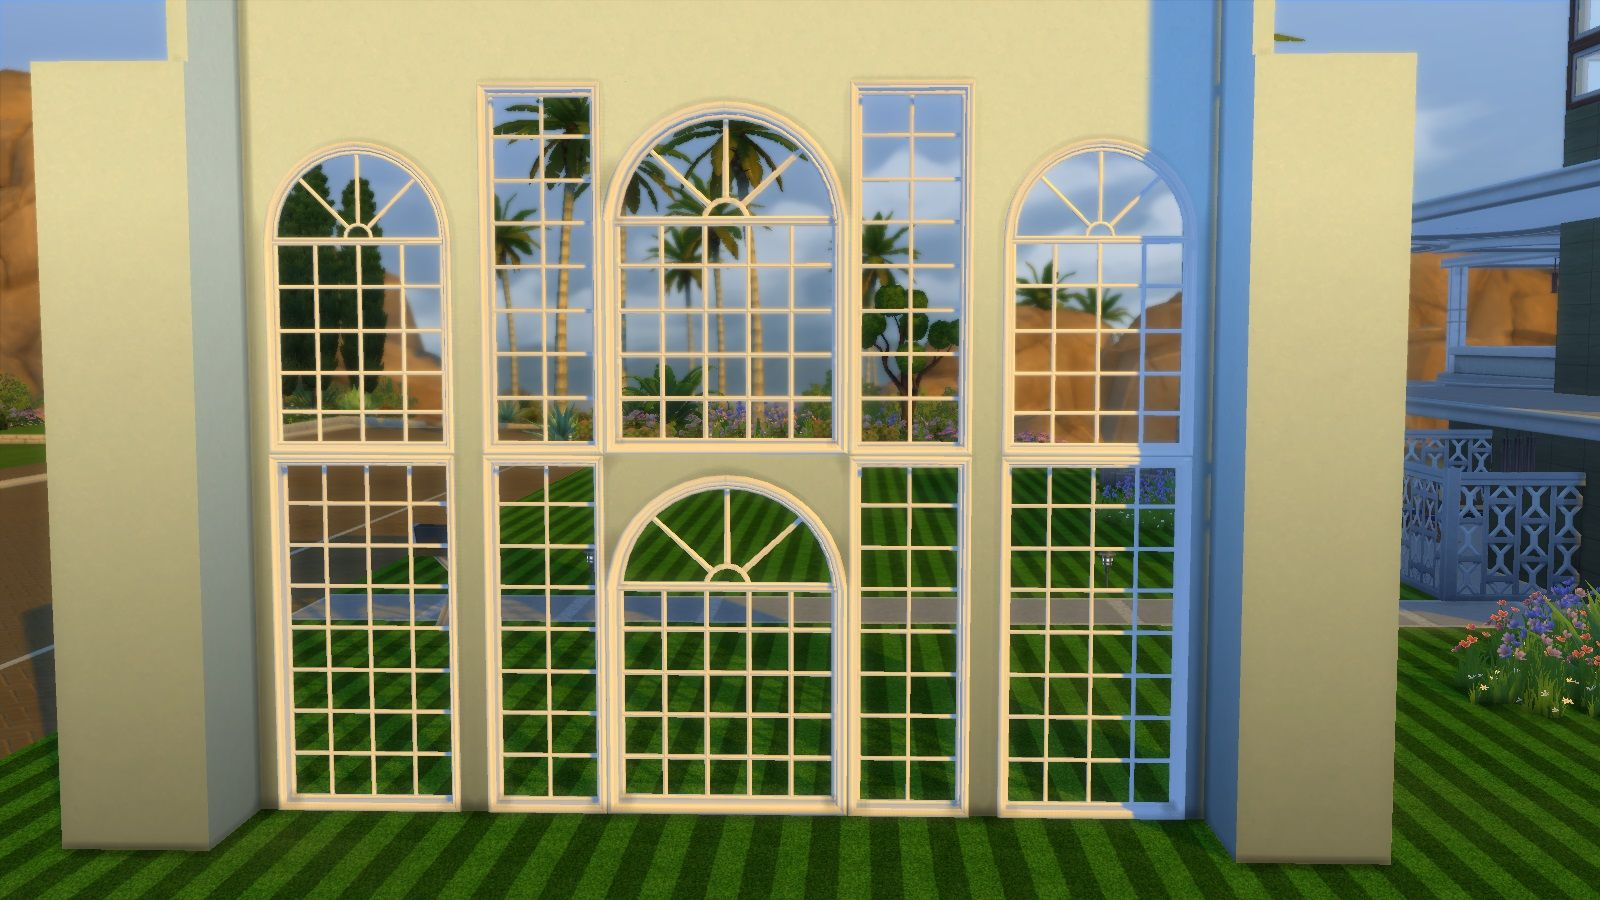 Mod The Sims Colonial Build Windows The sims, Sims 4, Sims